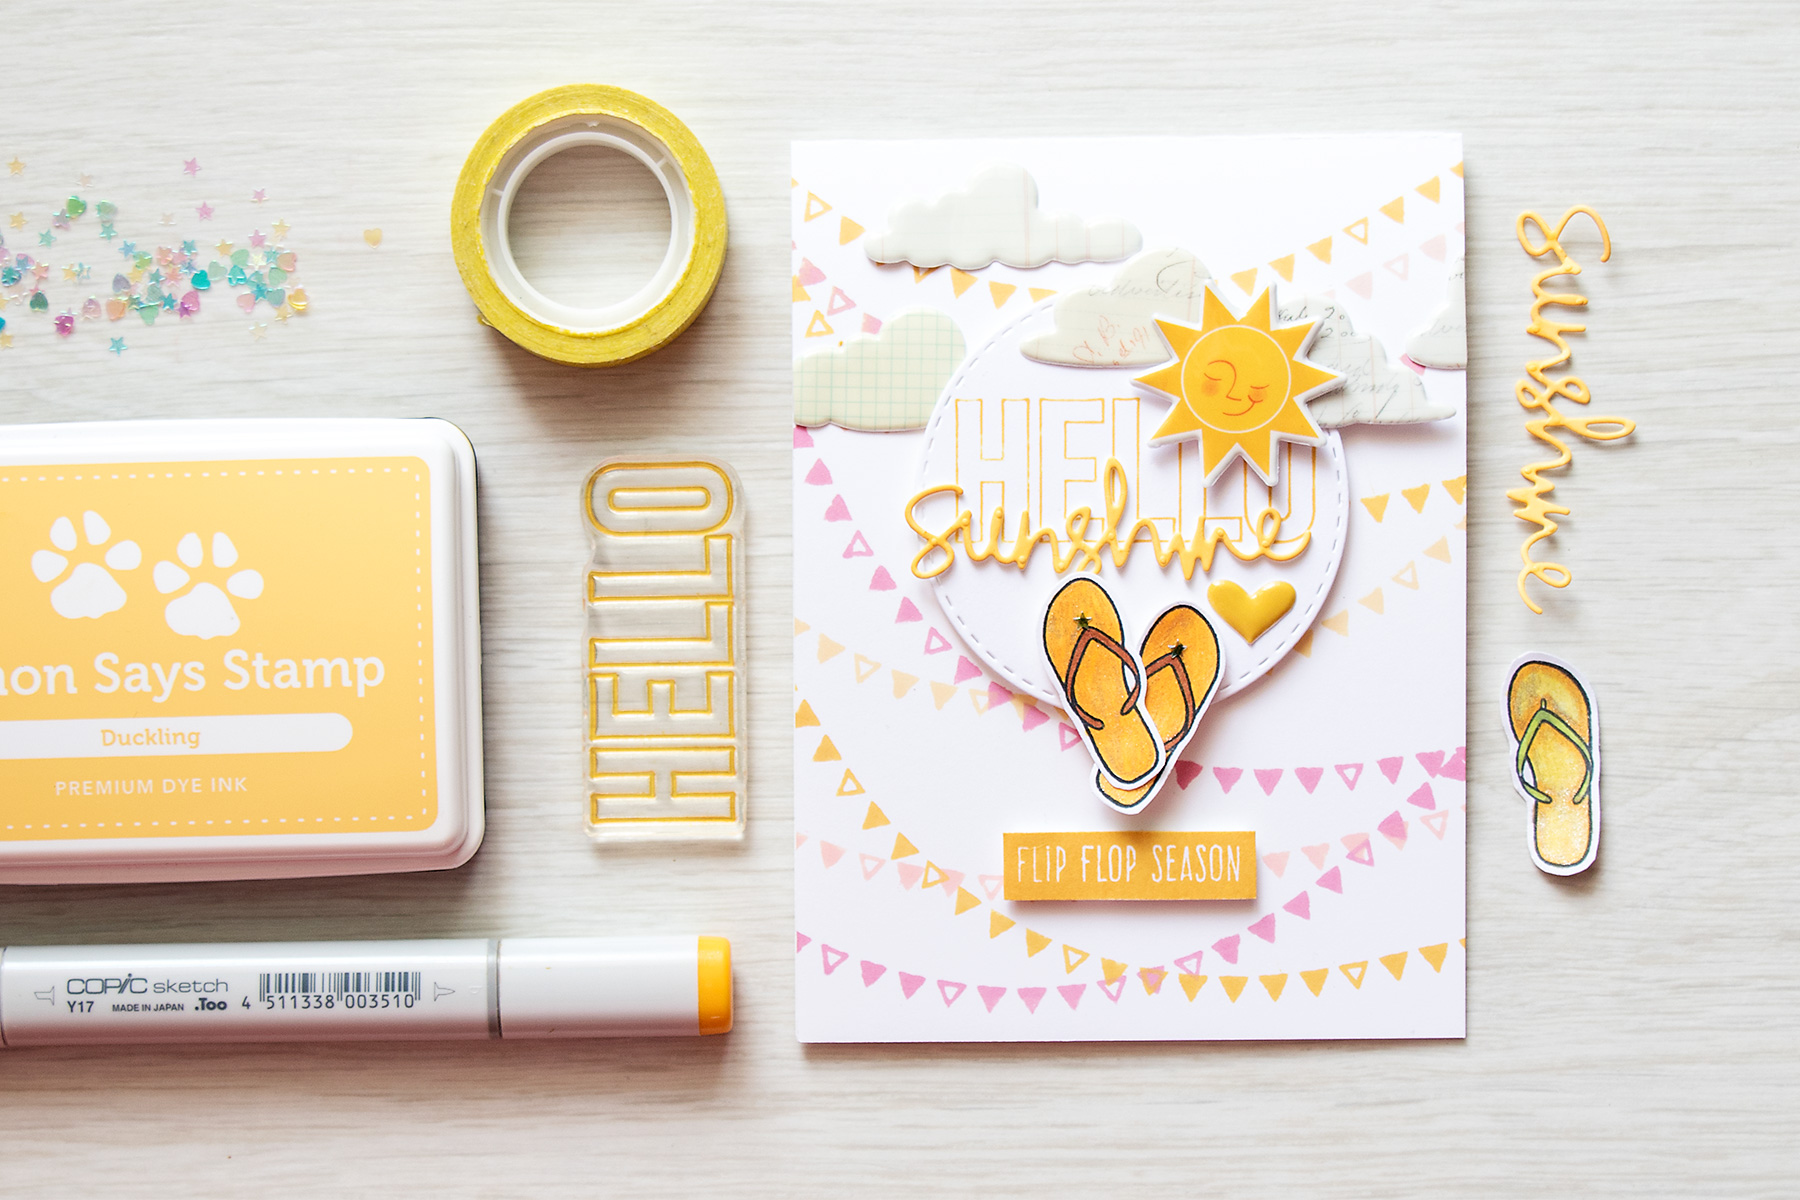 Simon Says Stamp August Card Kit - Hello Sunshine. Video